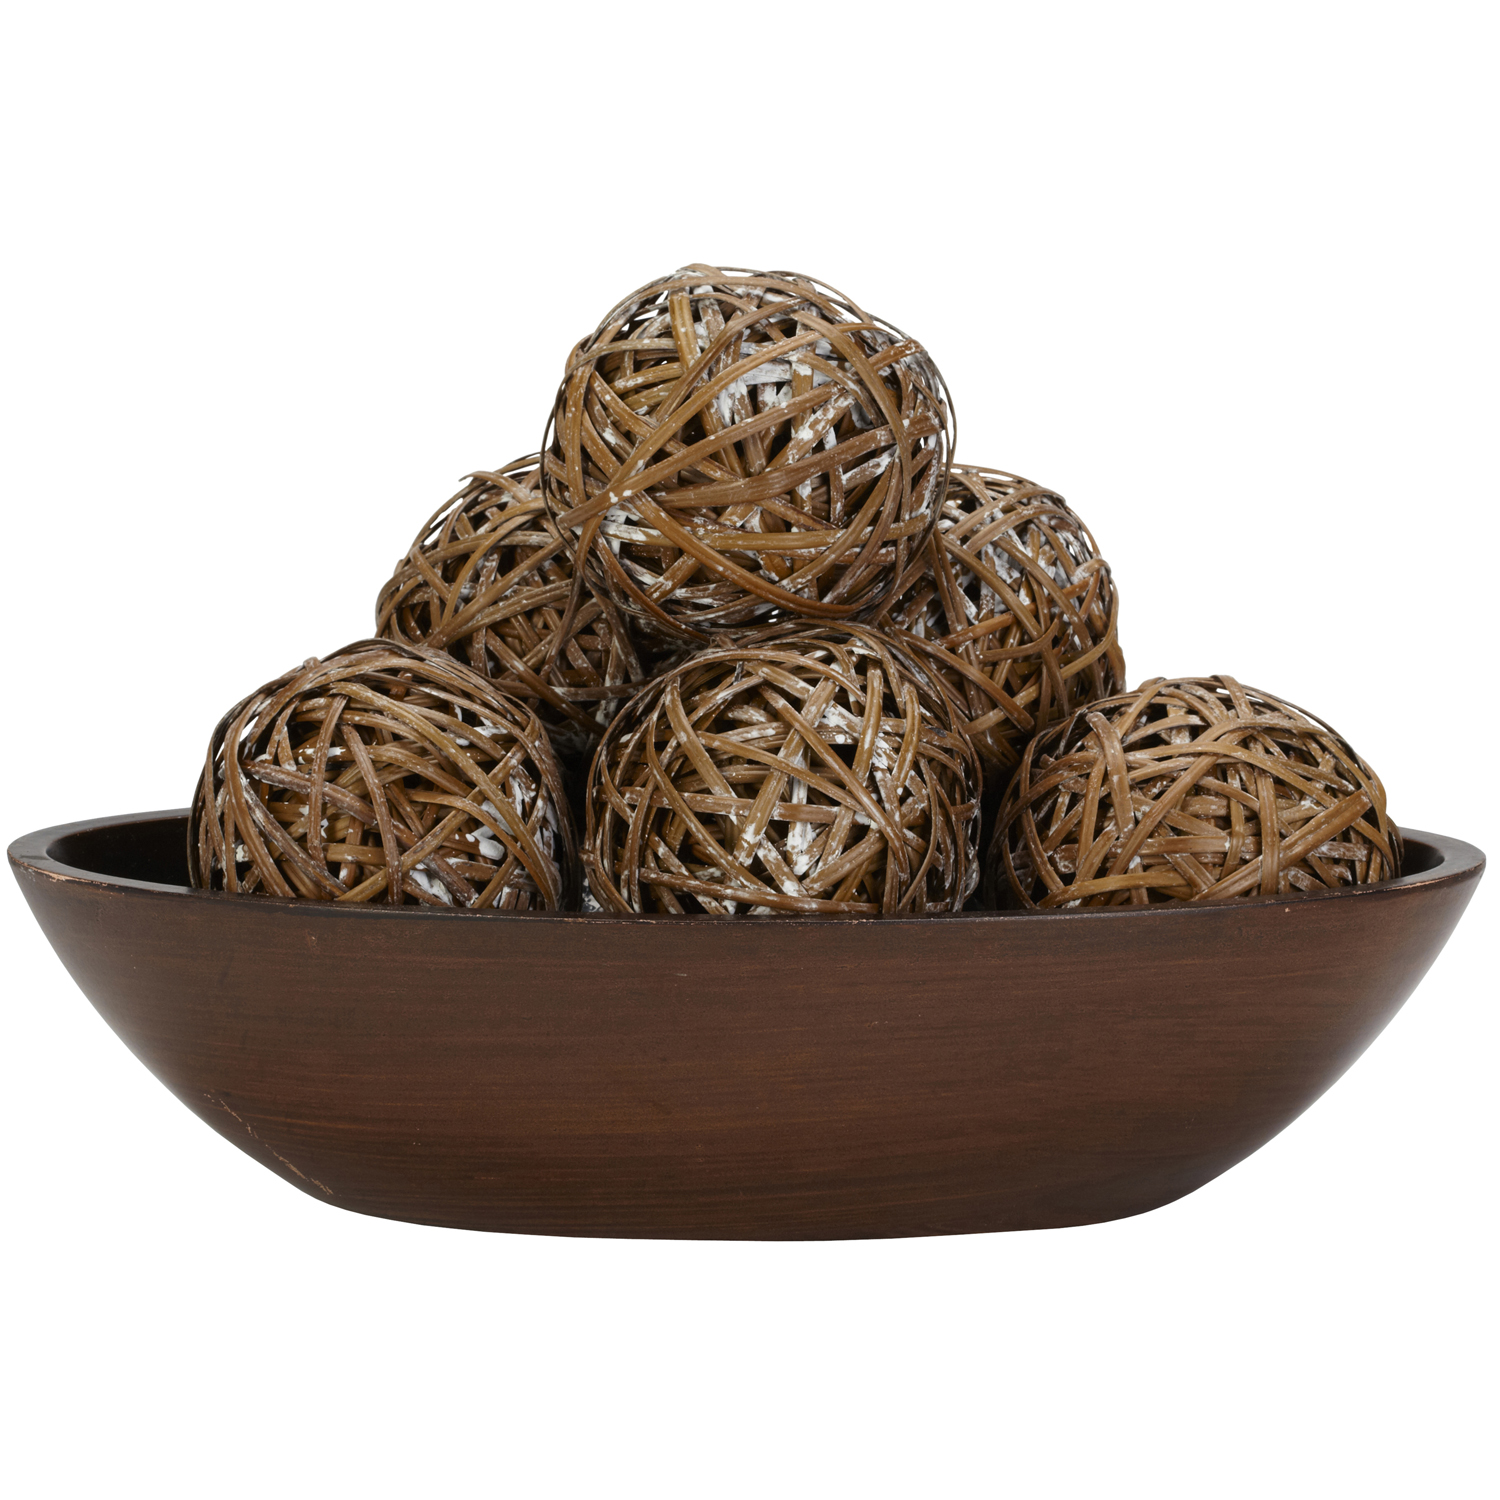 Decorative decorative orbs on brown bowl for table accessories ideas